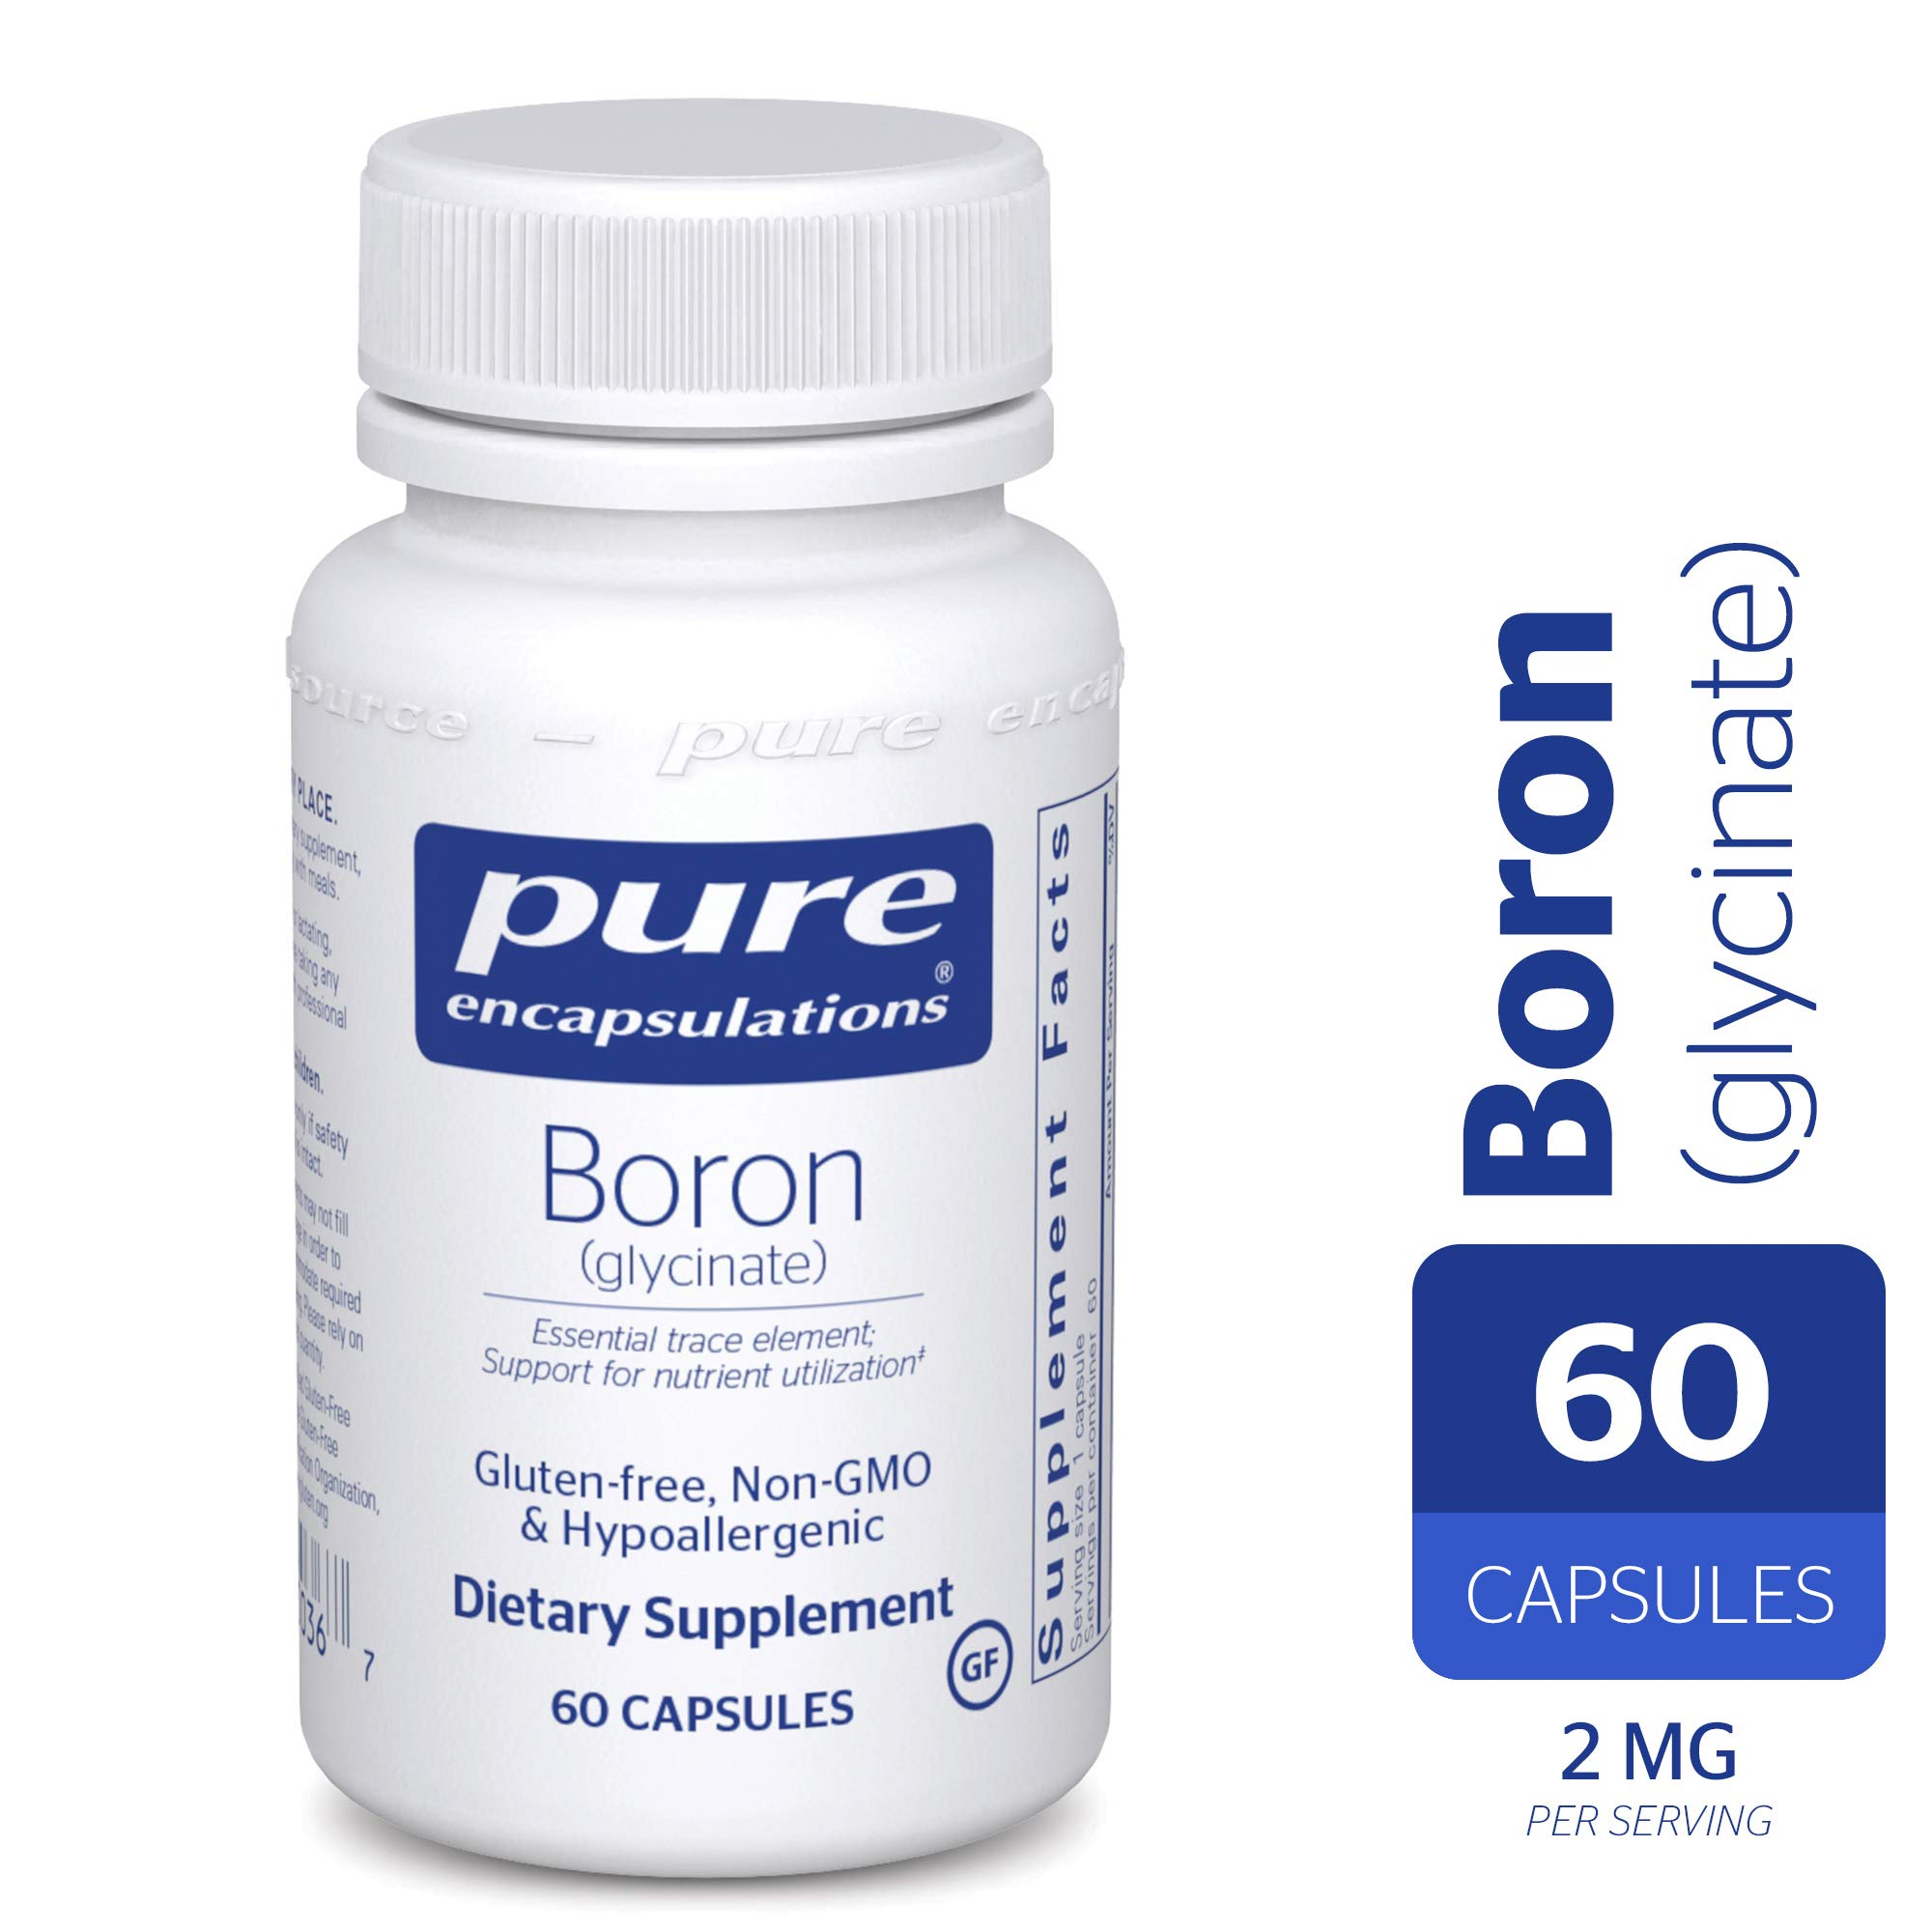 Pure Encapsulations - Boron (Glycinate) - Hypoallergenic Supplement for Healthy Nutrient and Hormone Utilization